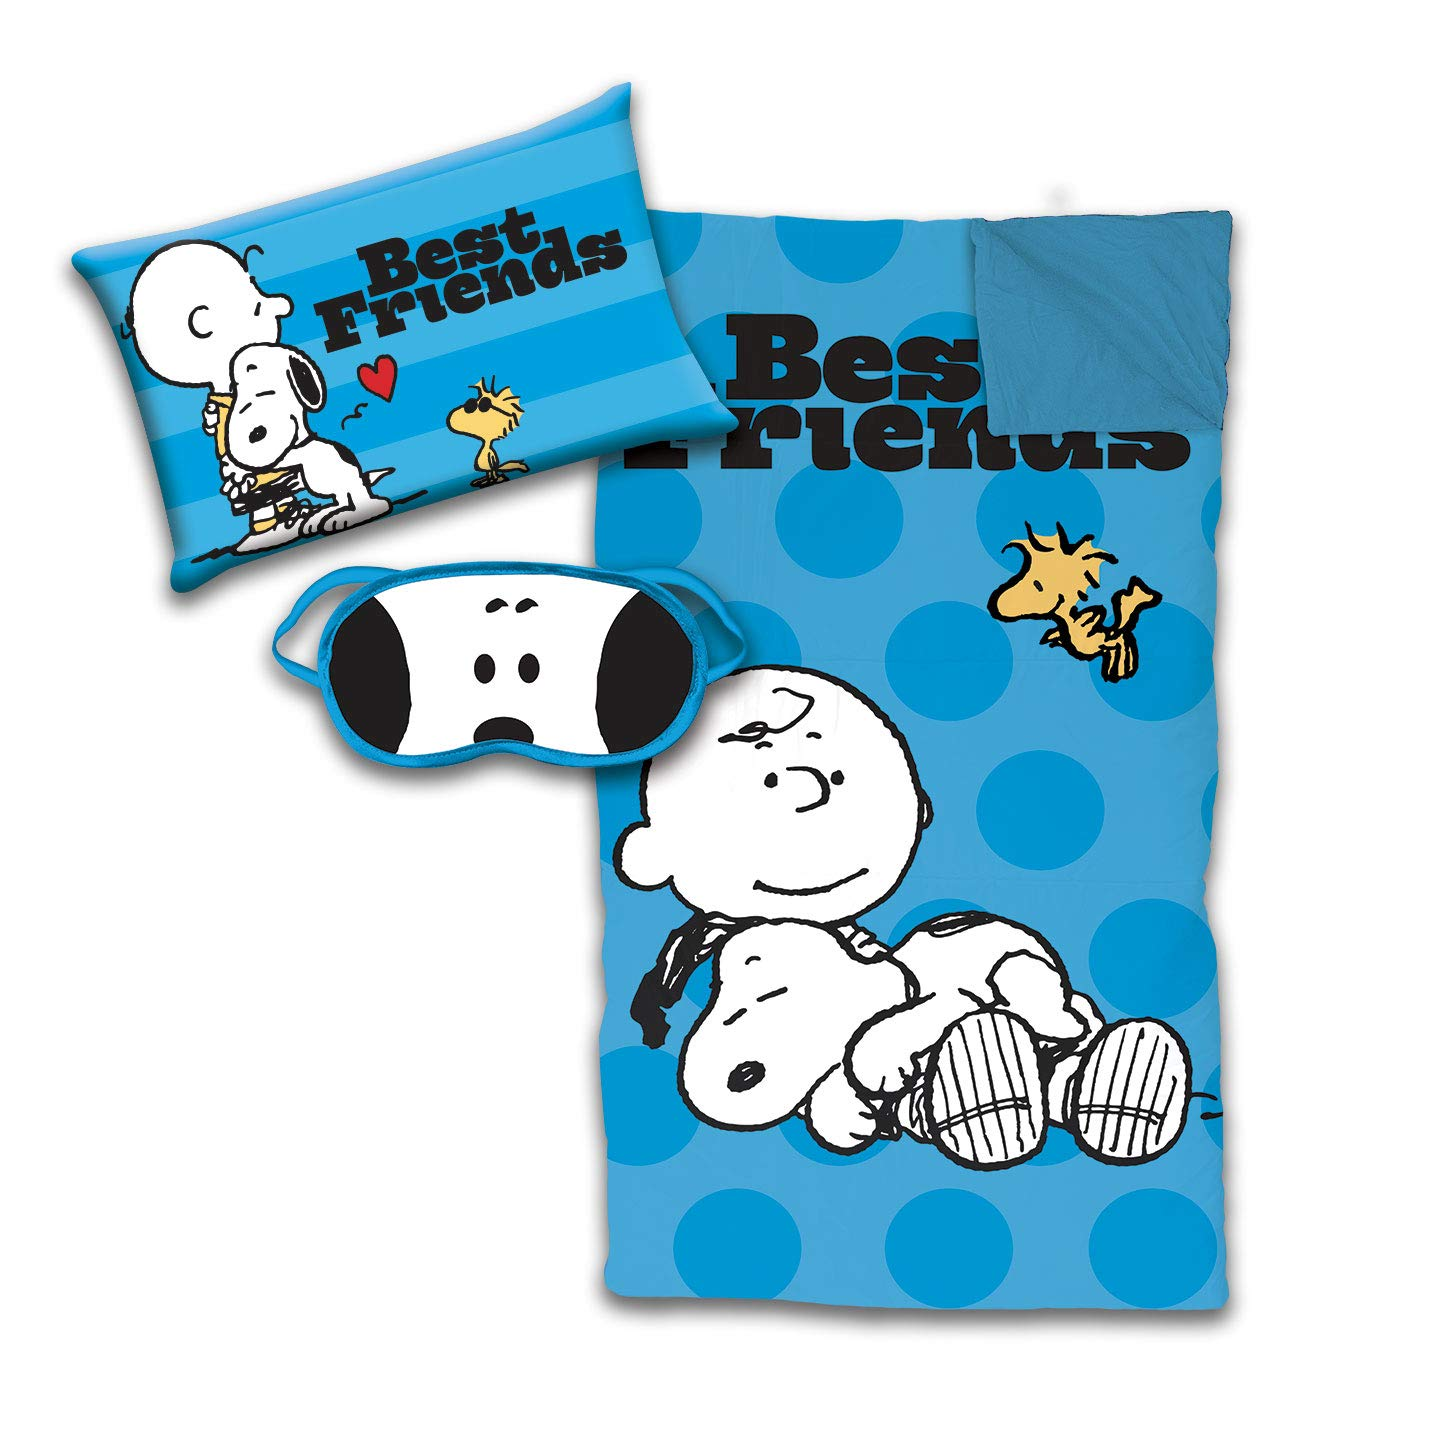 Jay Franco Peanuts Snoopy 3 Piece Sleepover Set - Cozy & Warm Kids Slumber Bag with Pillow & Eye Mask - Featuring Charlie Brown & Woodstock (Official Peanuts Product)